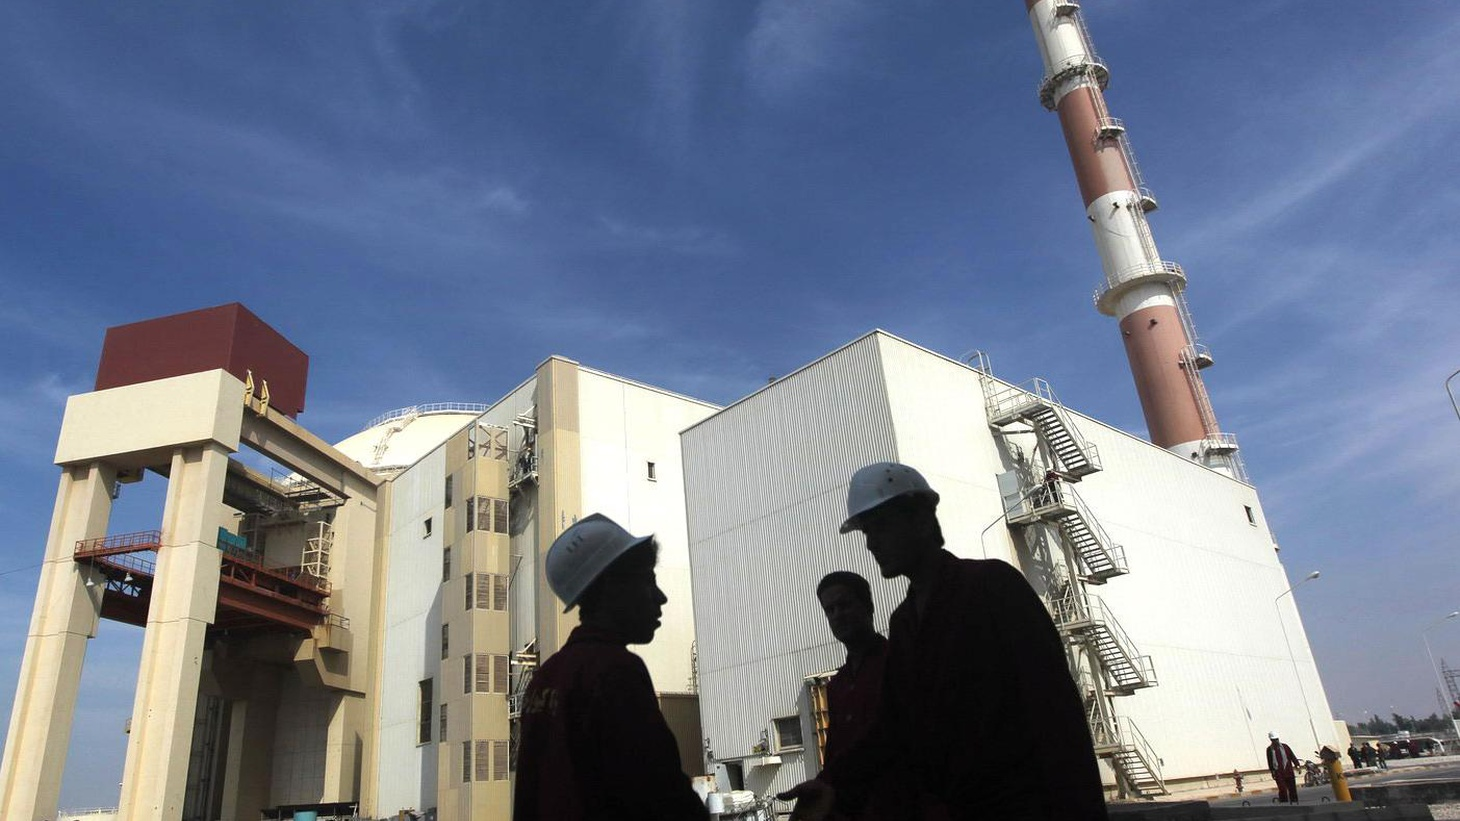 After more than a year since cancelling negotiation about its nuclear program, Iran's back at the bargaining table. But it's doubtful that talks, set for Saturday, will last.